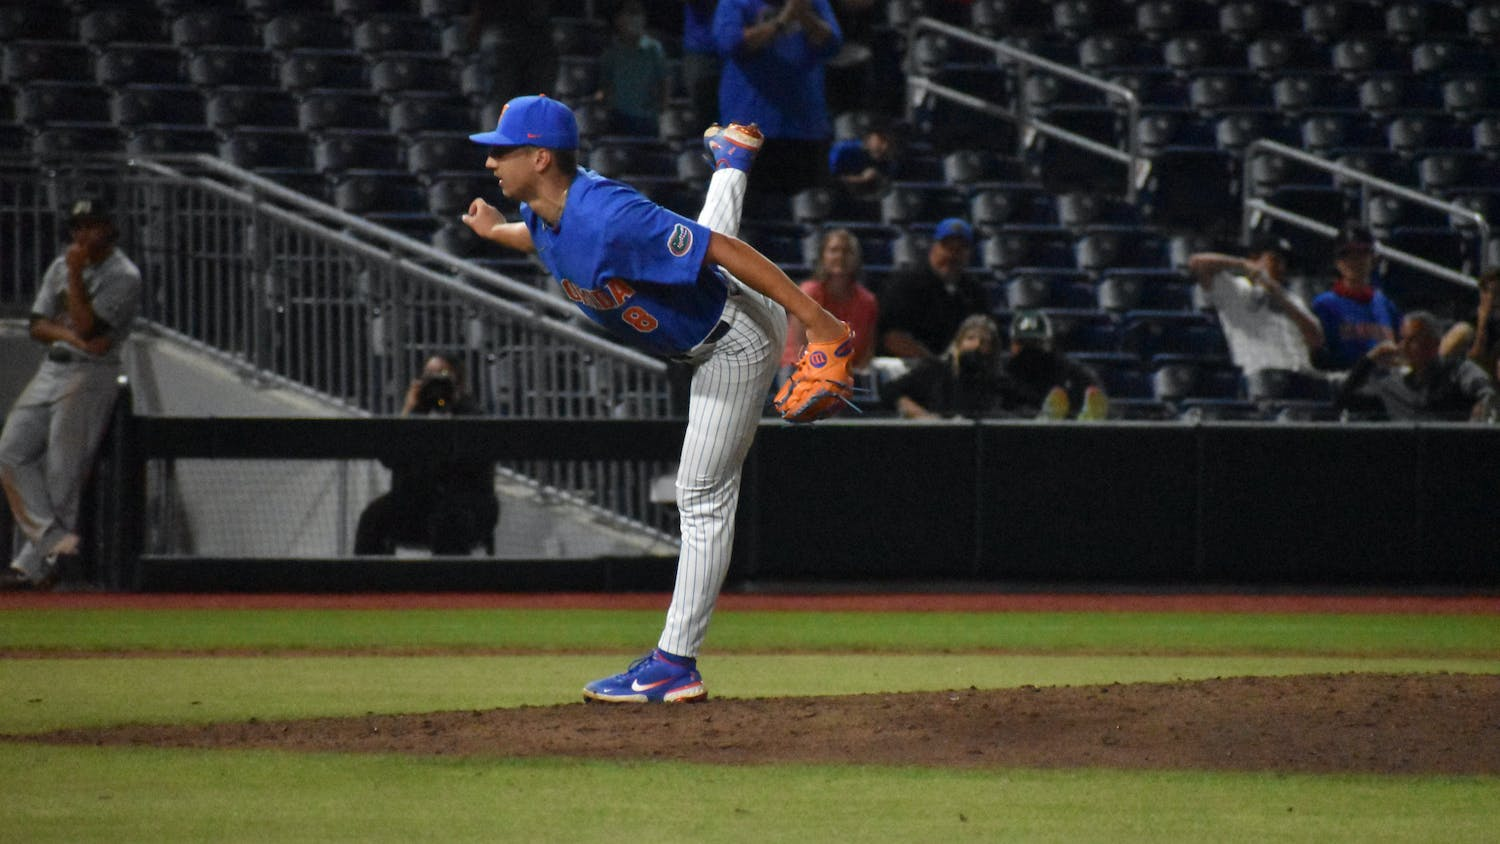 Florida's Brandon Sproat pitches against Jacksonville on March 13. Sproat started on the mound for Florida Saturday, but the Gators saw their SEC Tournament run come to an end with a 4-0 semifinal loss to Tennessee.